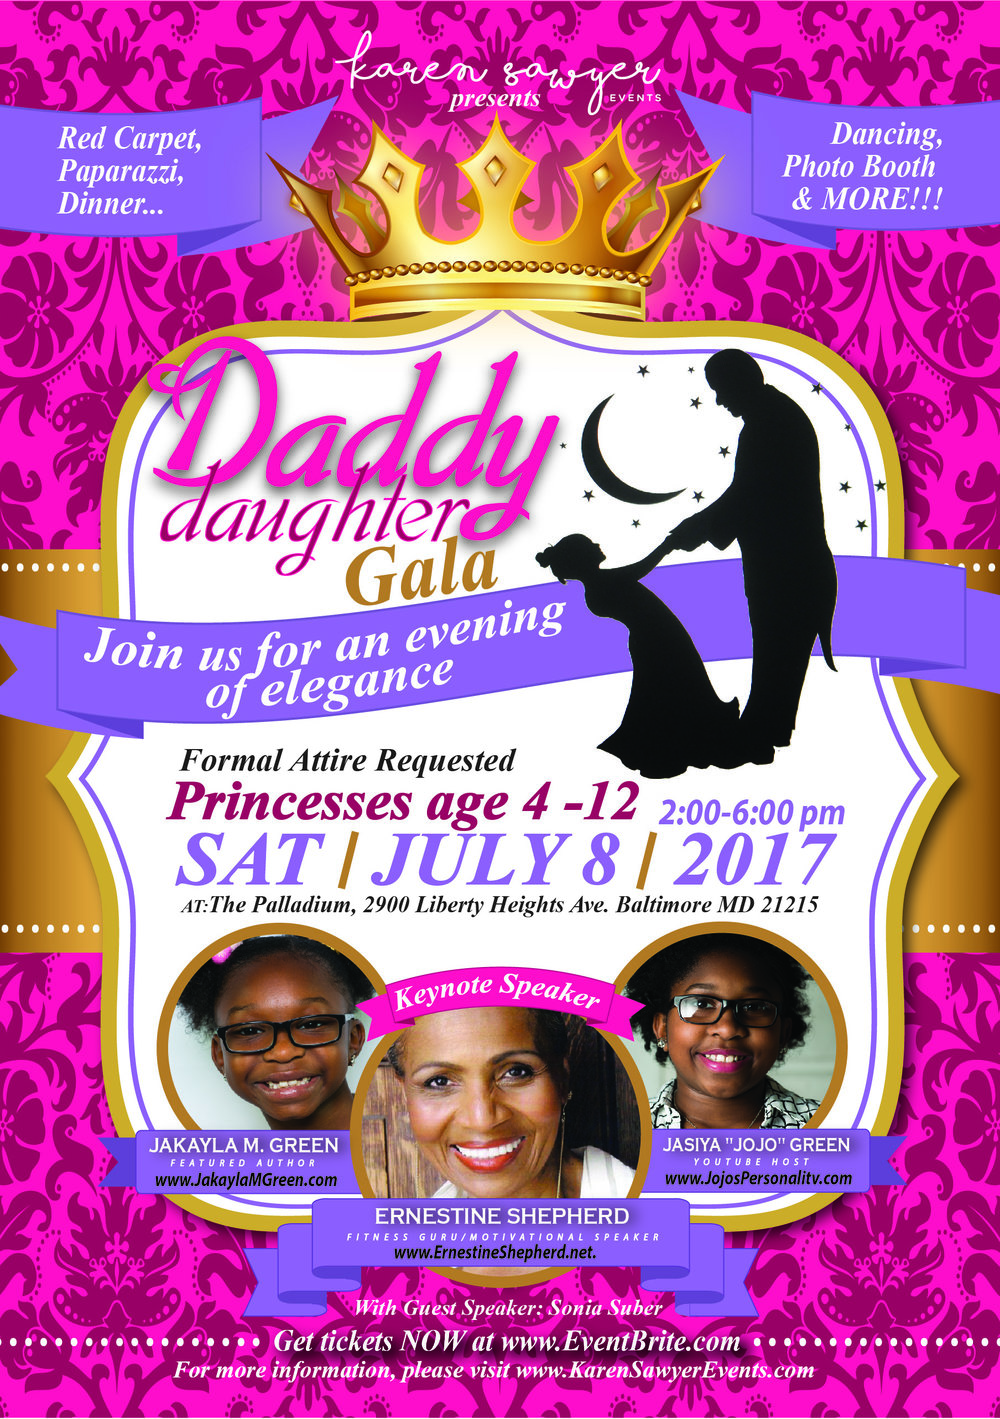 The flyer for the Daddy Daughter Gala